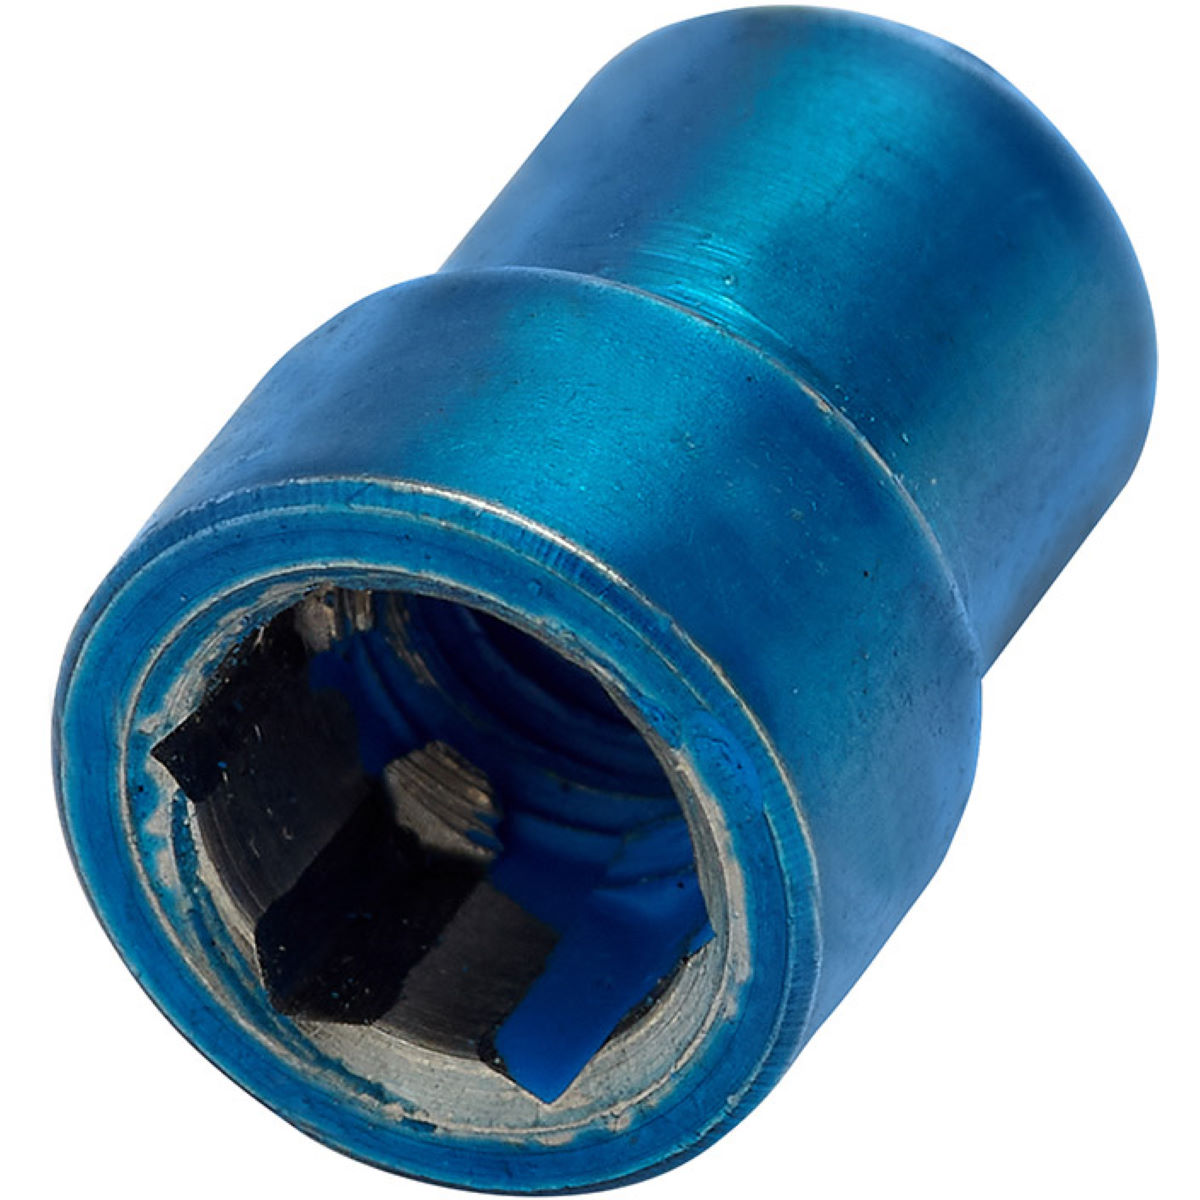 Sixpack Racing Millenium 2.0 Axle Nut - Right Blue  Pedal Spares